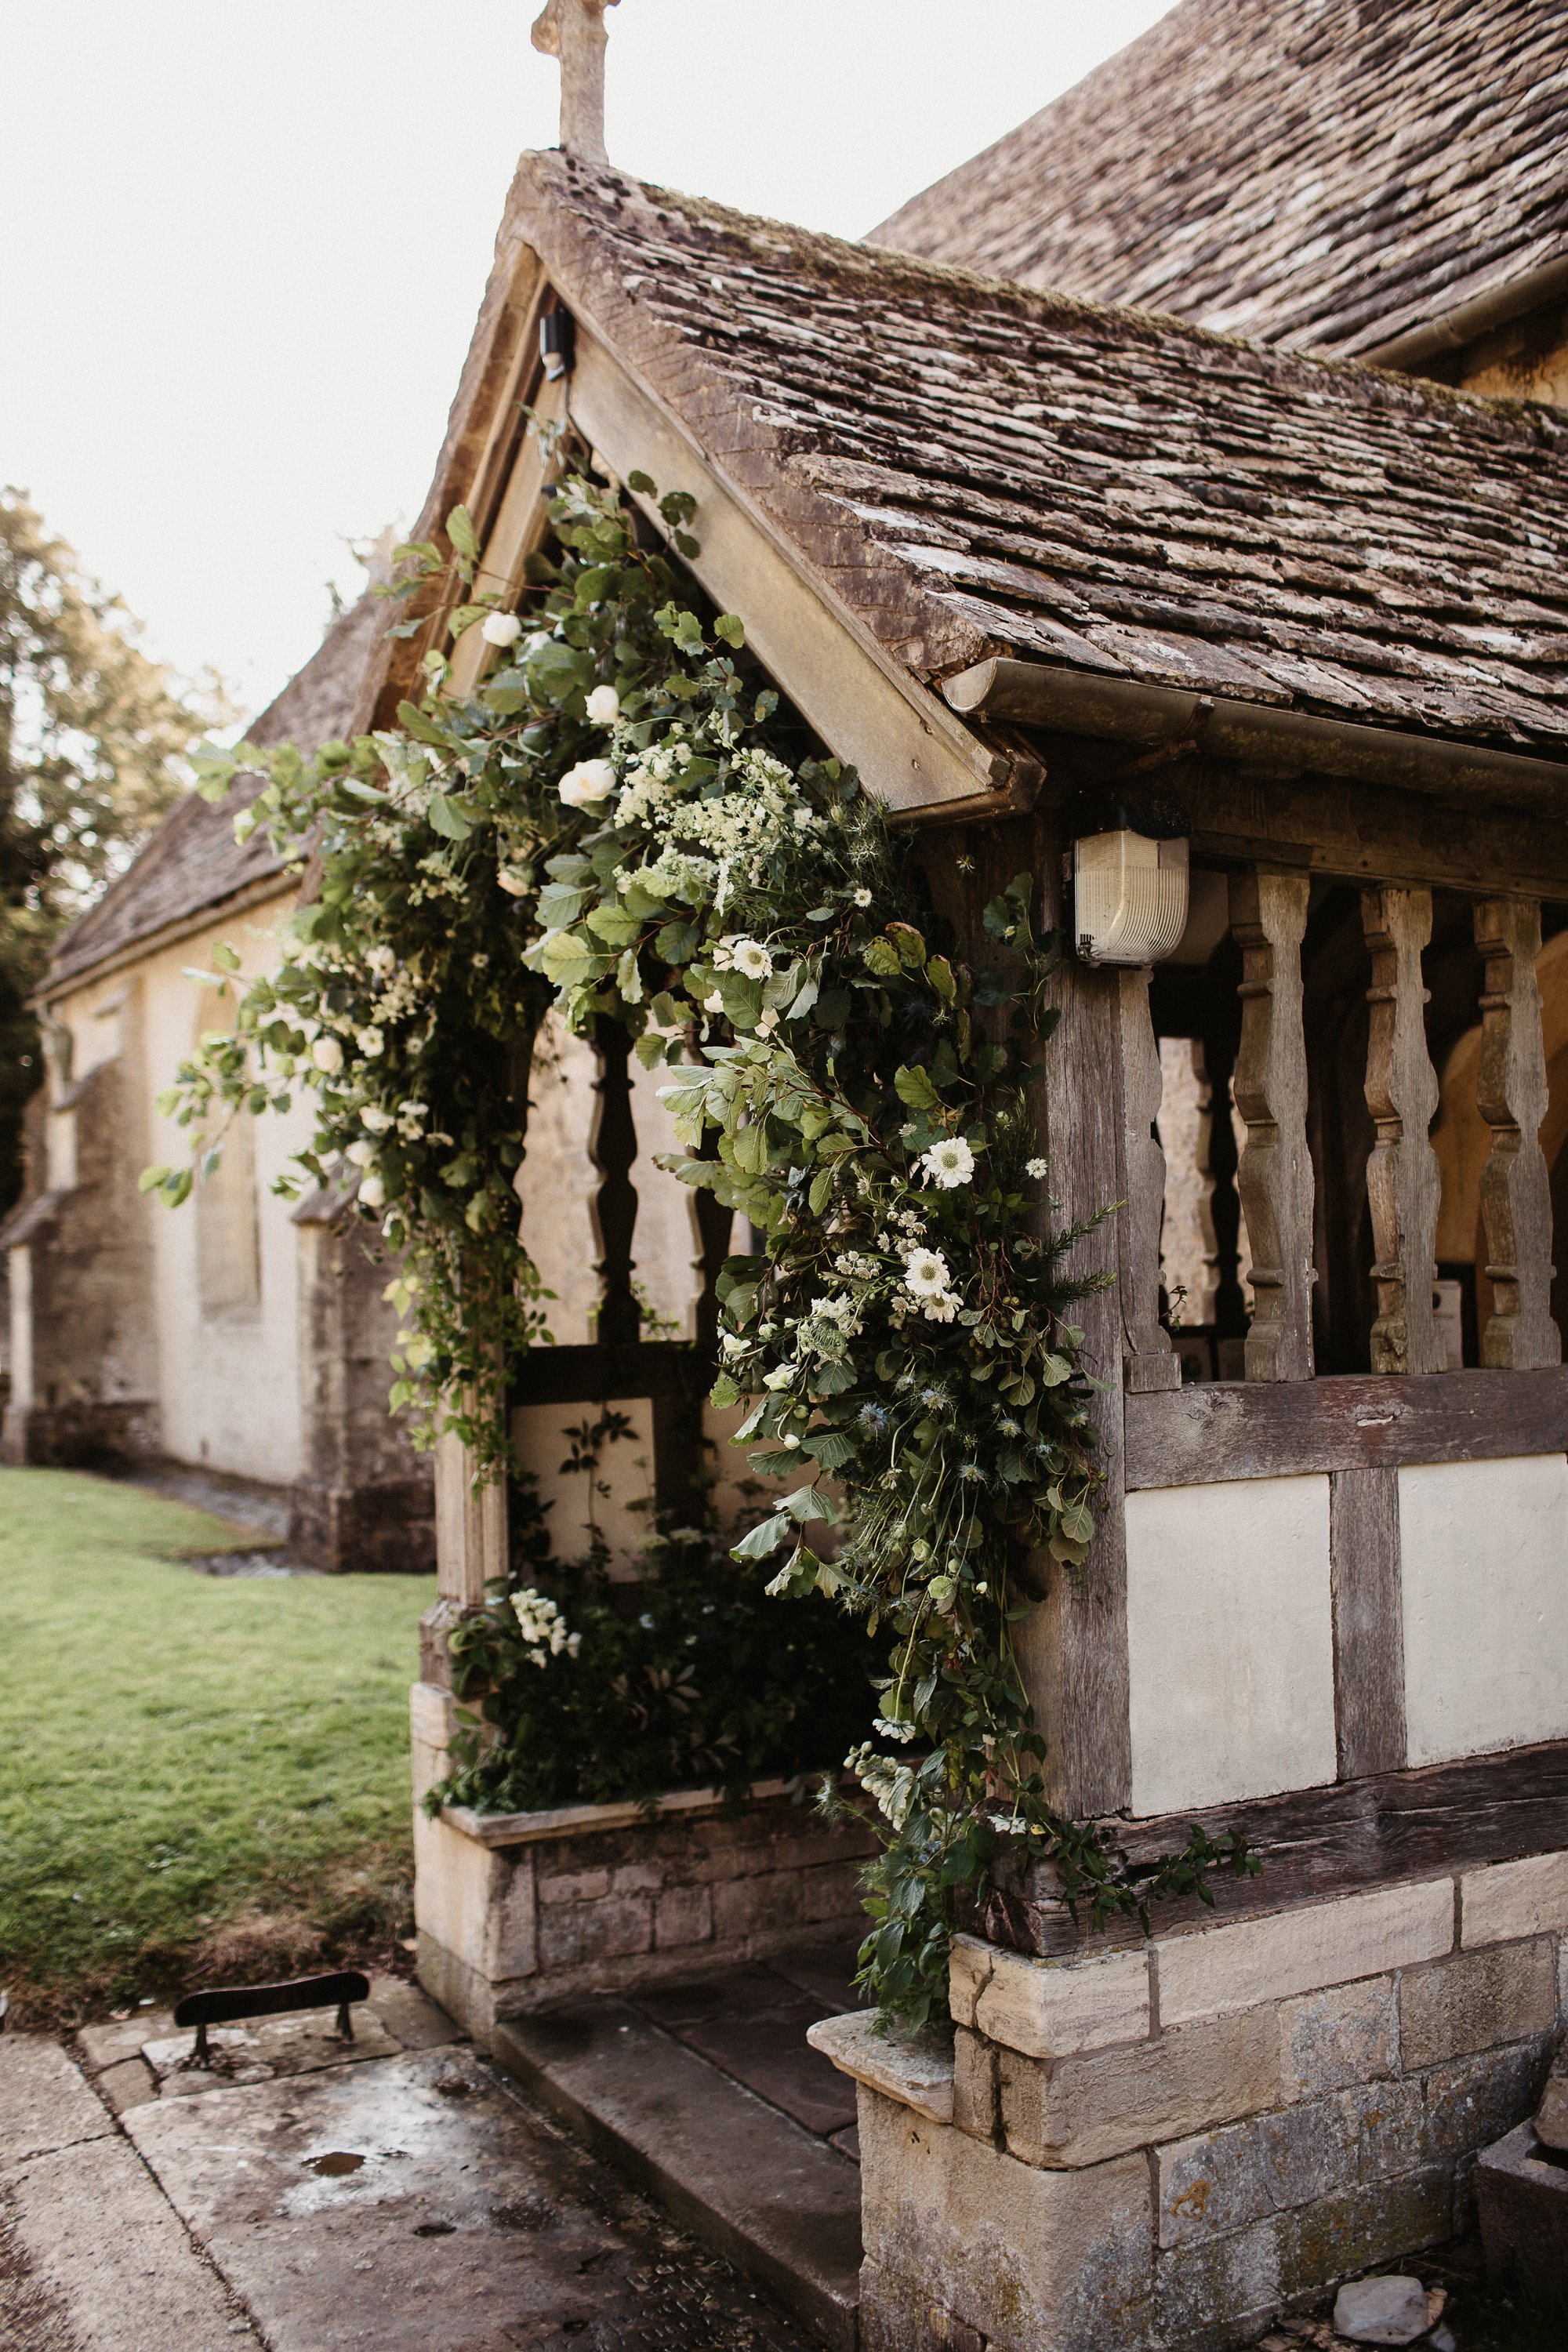 15th century English church porch at Elmore decorated with foliage and flowers for a wedding